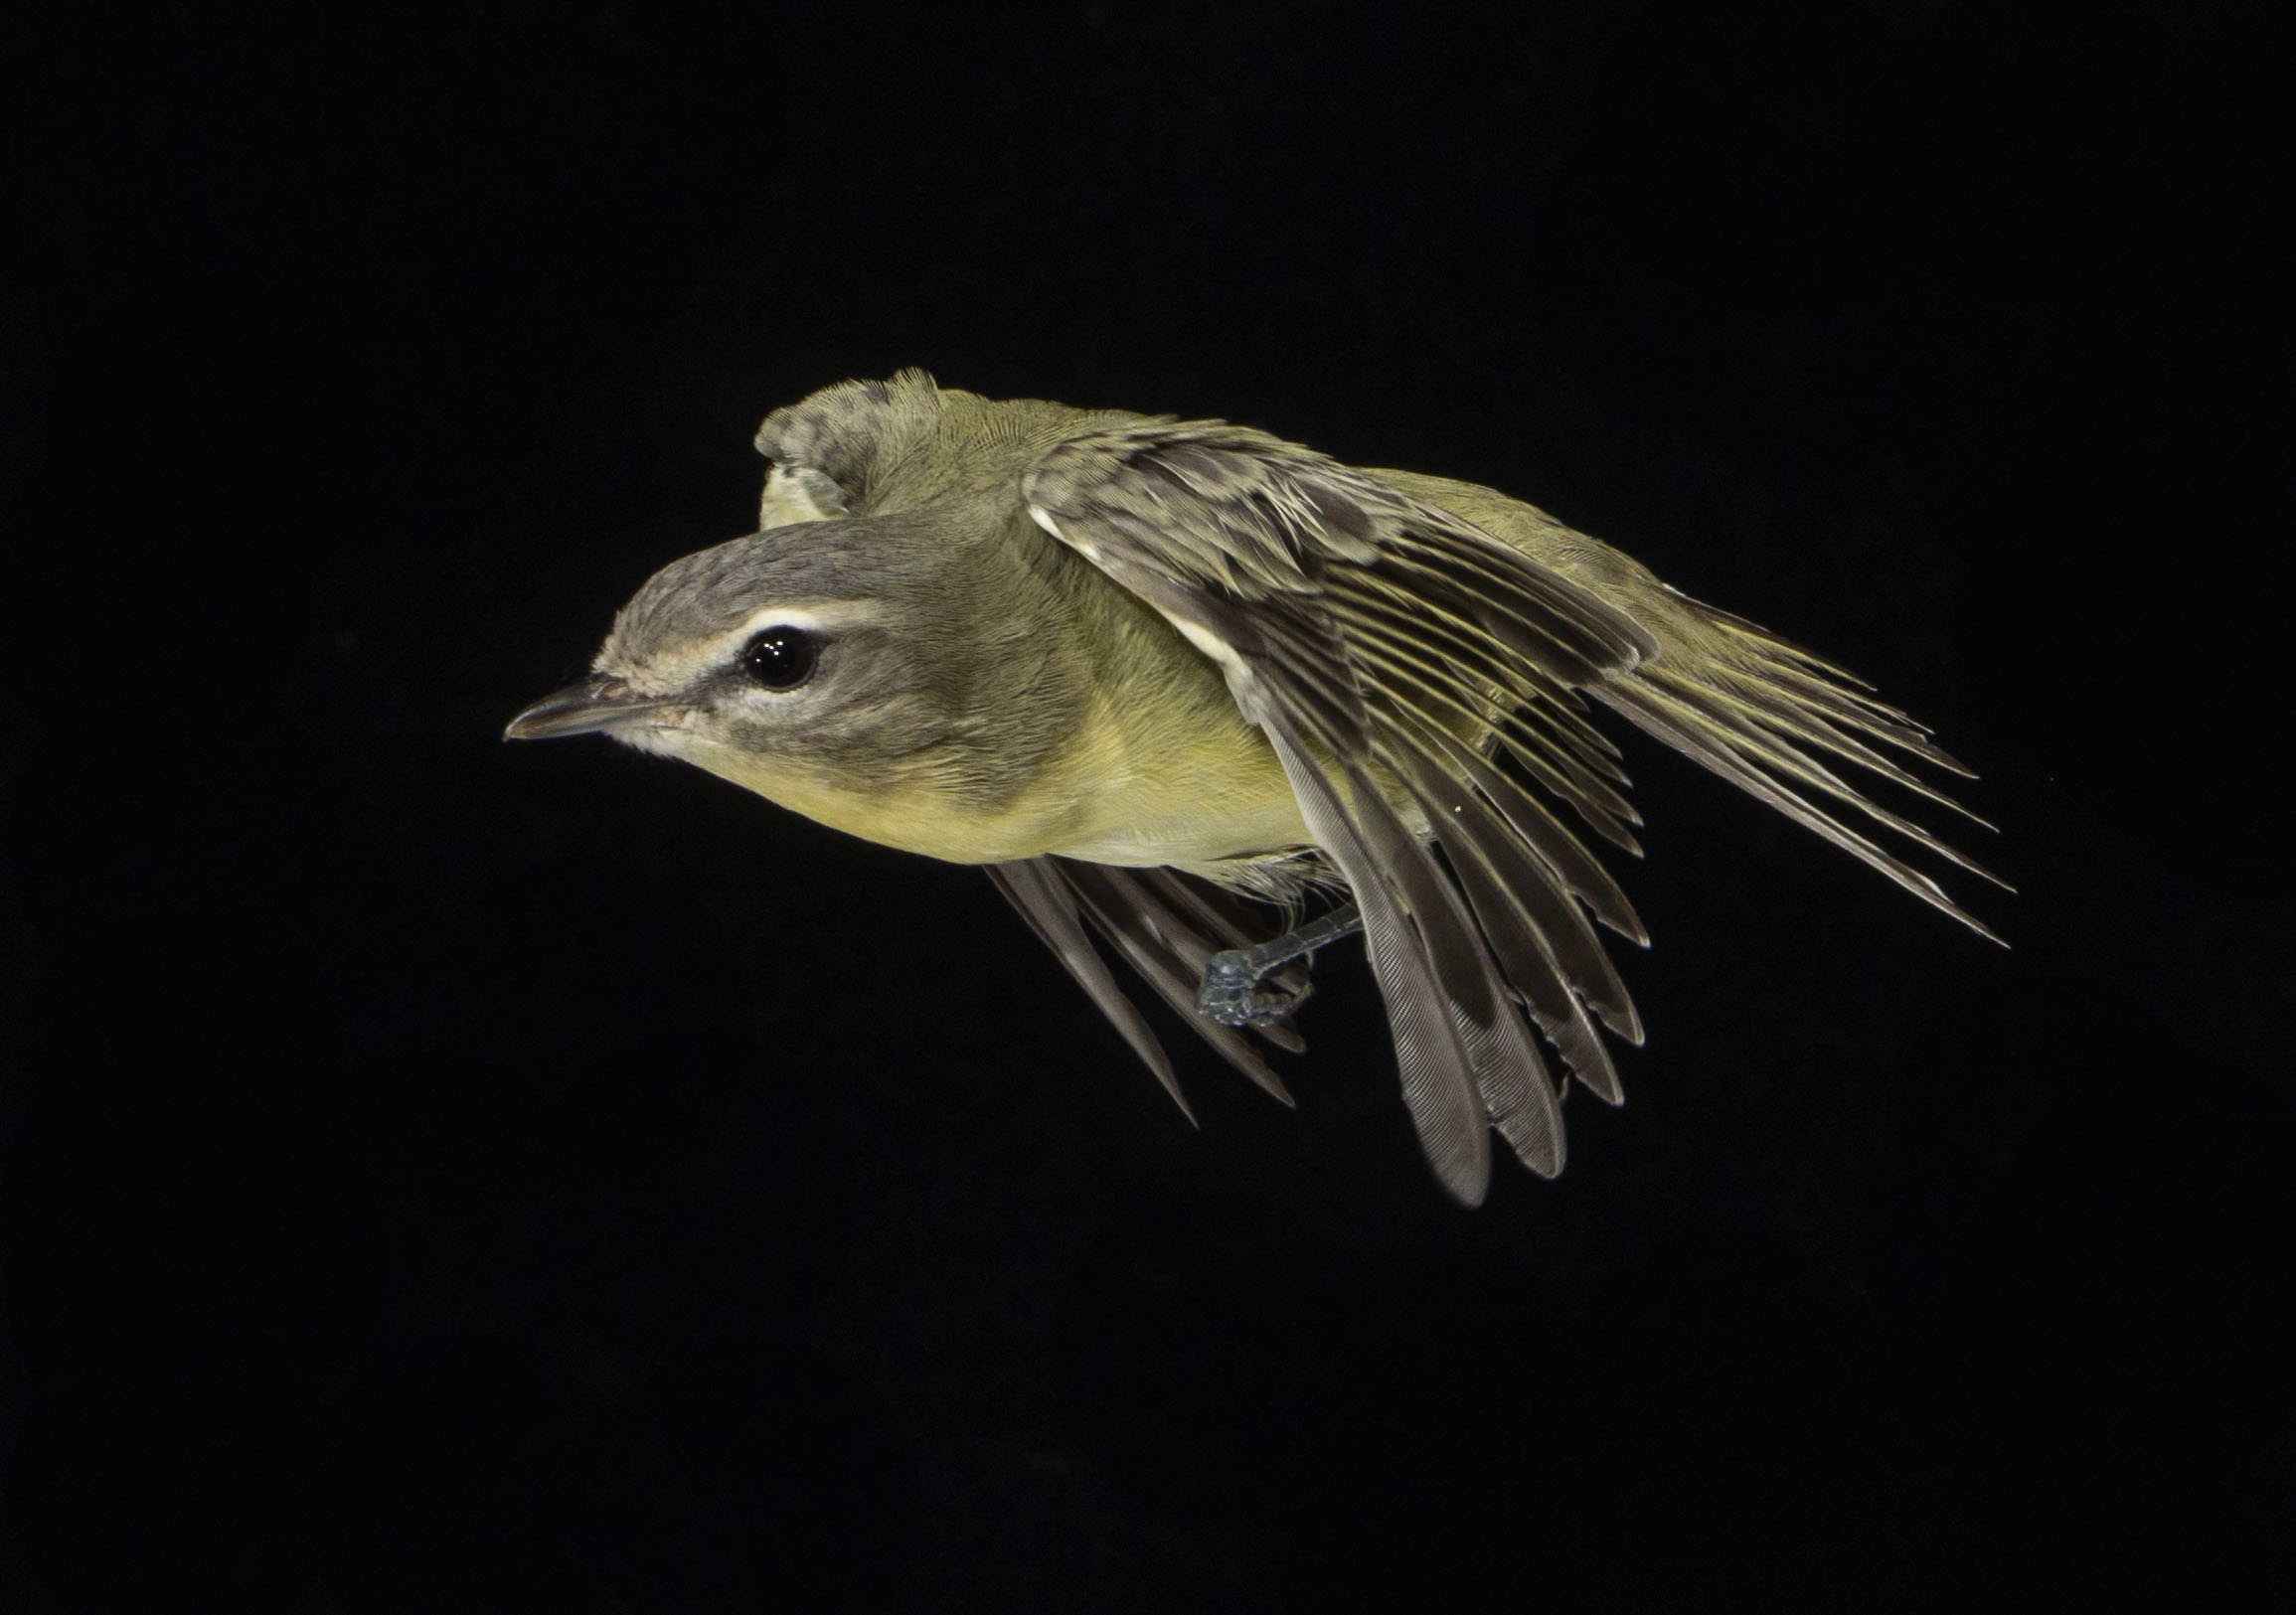 A Philadelphia Vireo in flight with a black background